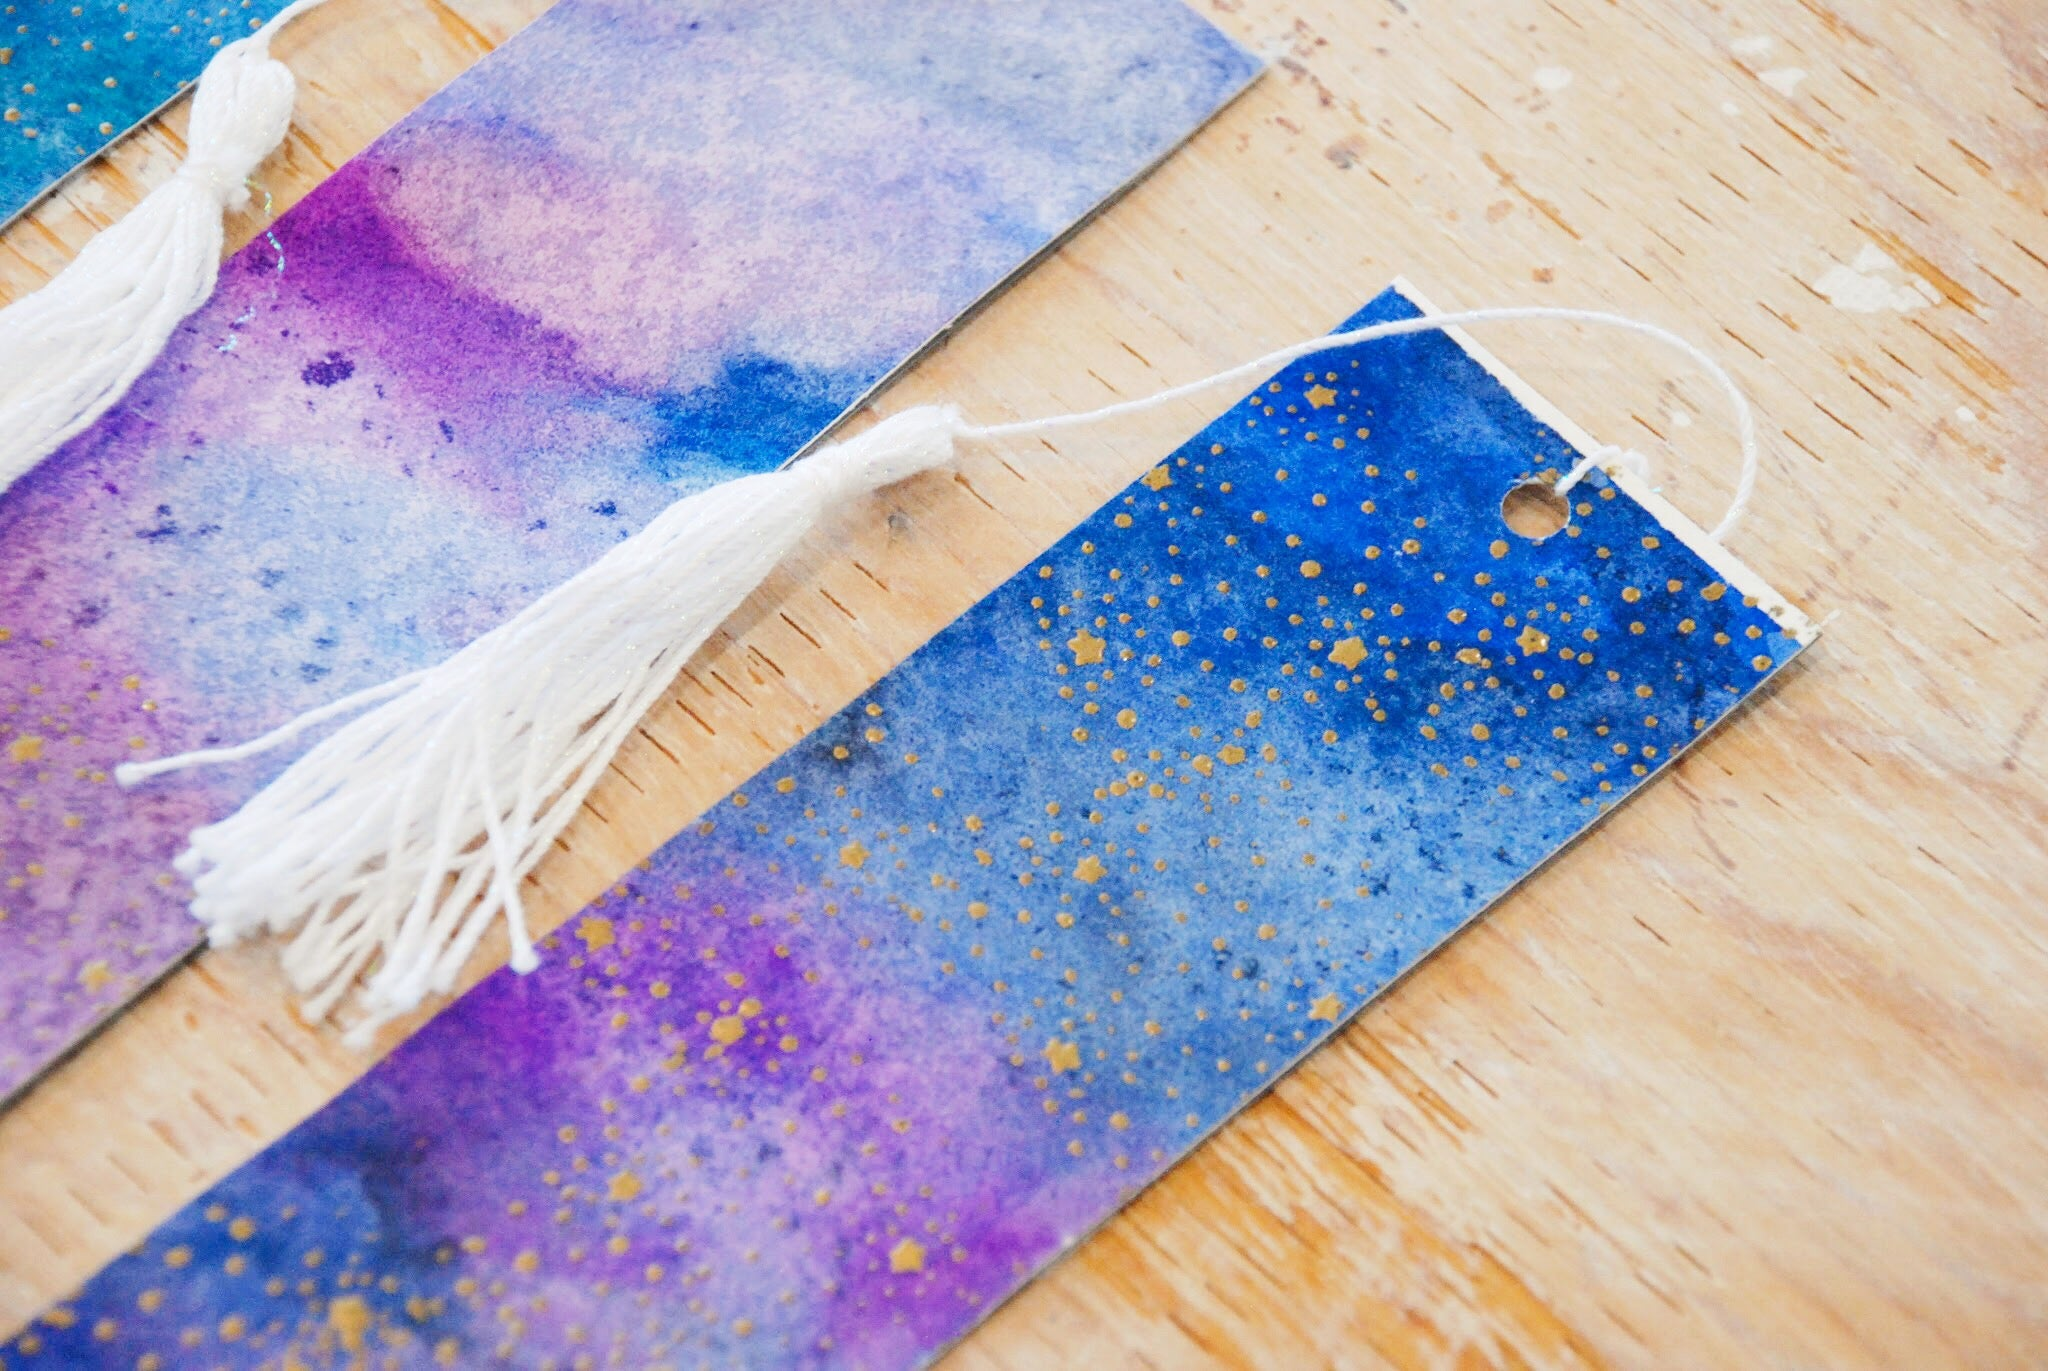 Galaxy Away | handmade bookmarks with handmade tassels | blue-purple-pink-green galaxy background with gold embossed stars and white glitter tassel | Thoughtfully Handmade